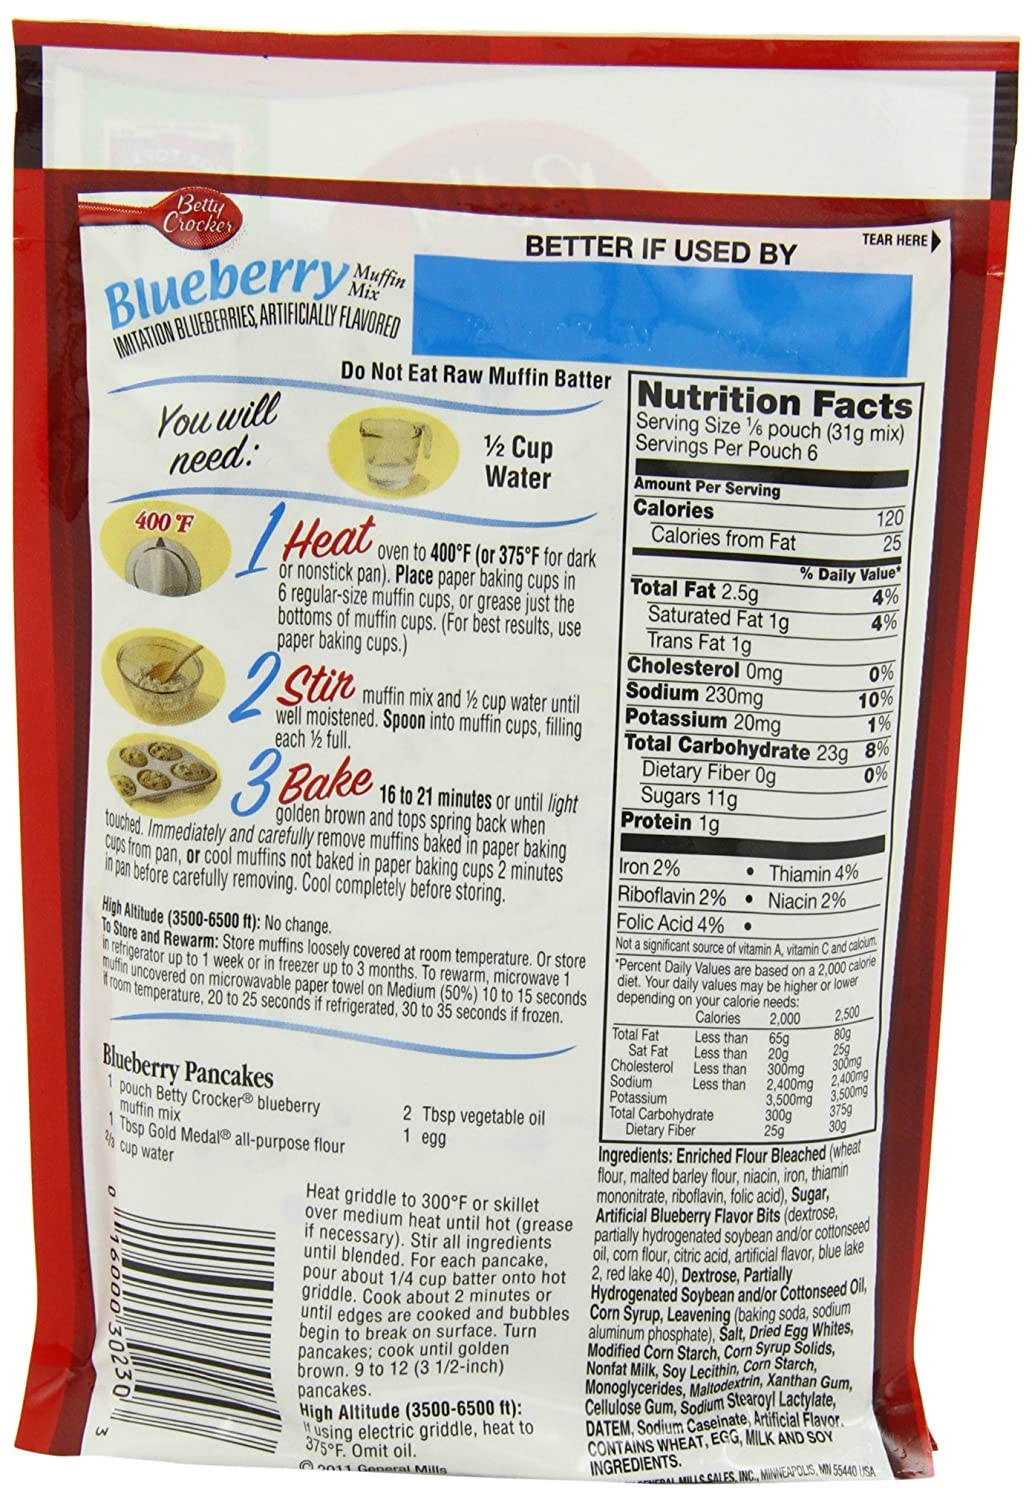 Amazon.com : Betty Crocker Blueberry Muffin Mix, 6.5 oz Pouch ...